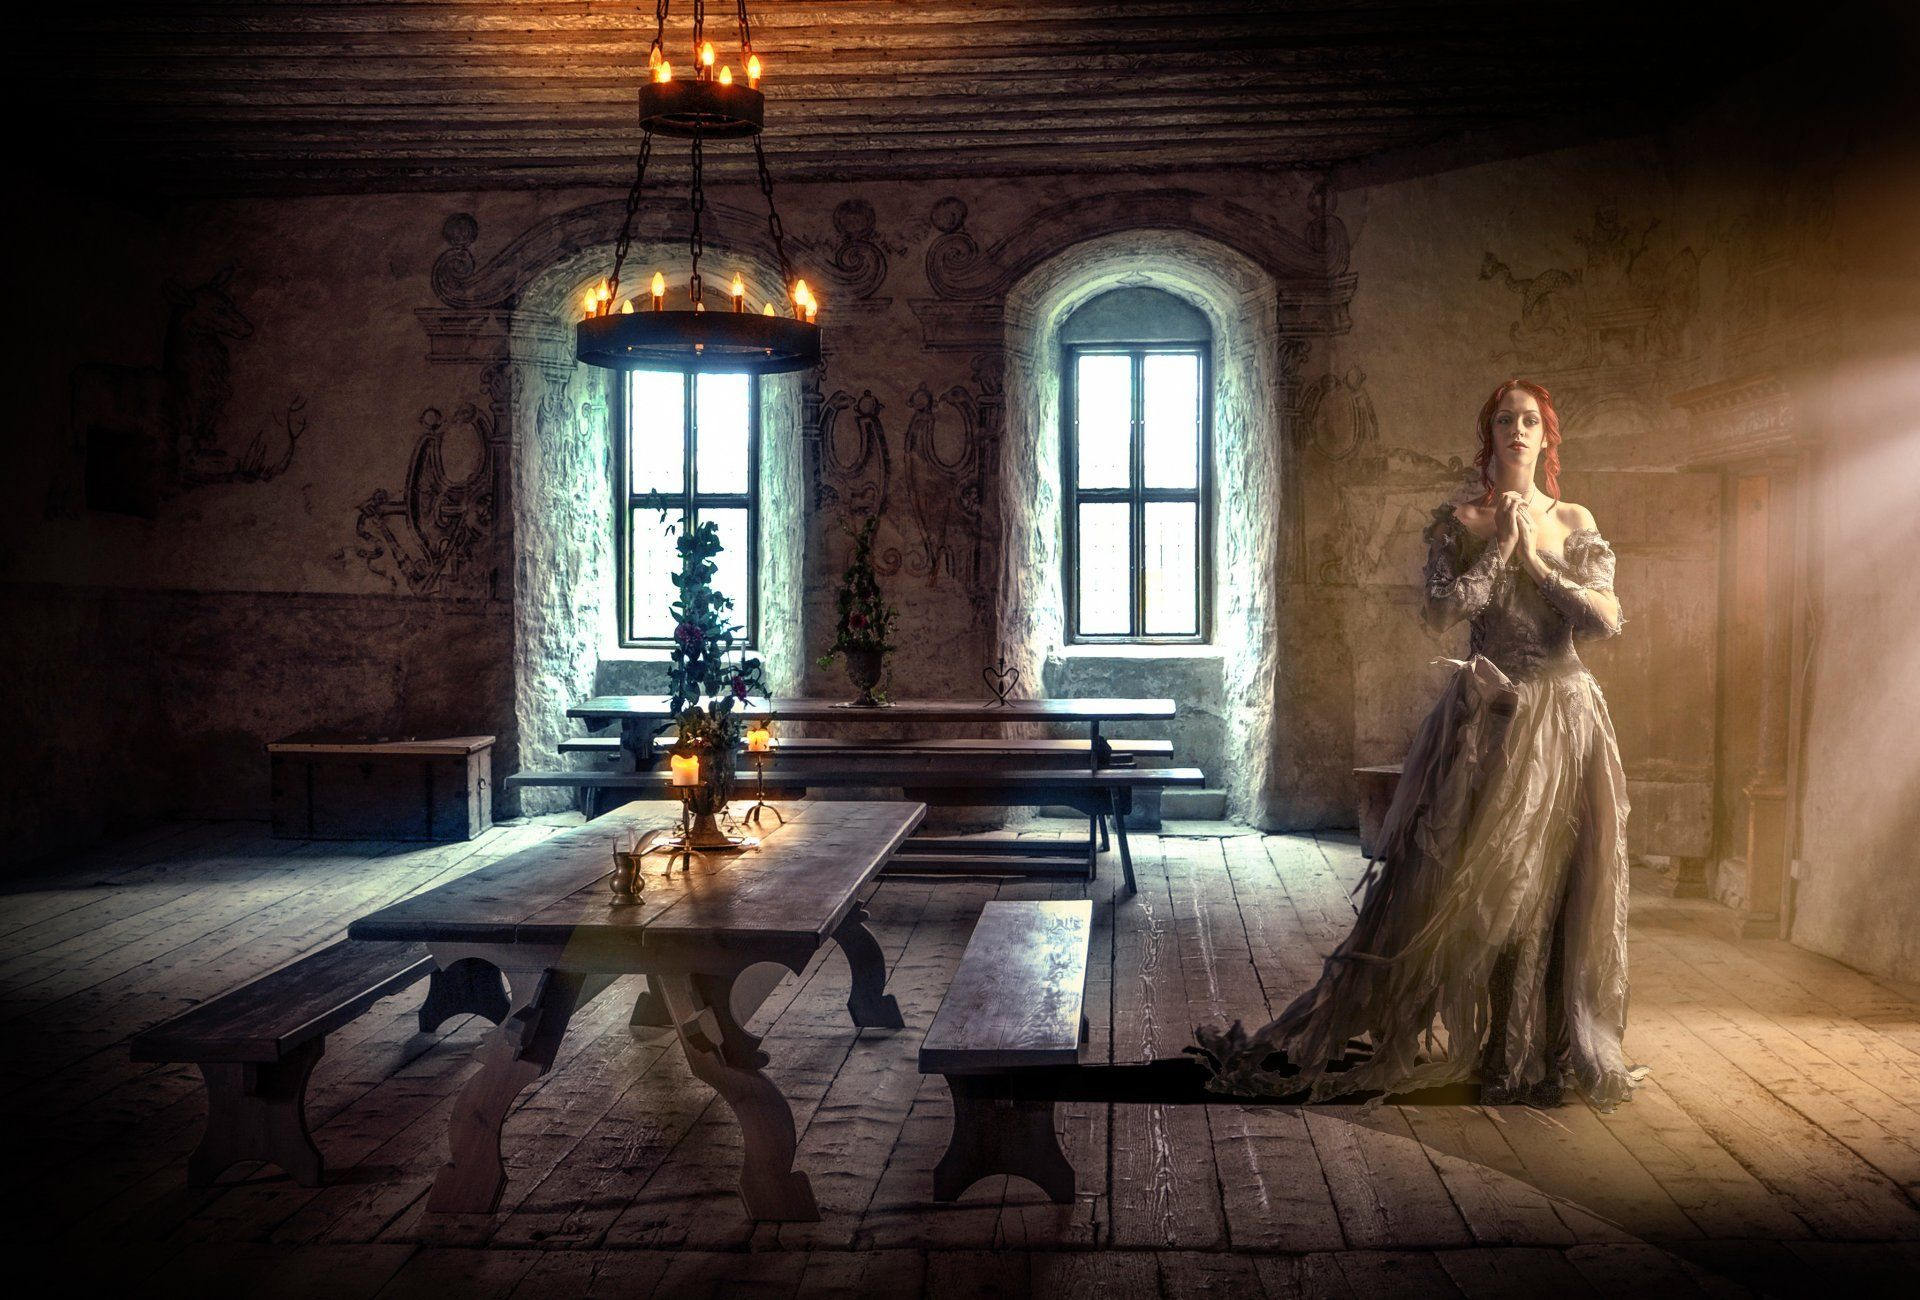 middle ages middle ages komnata.zal girl candles HD wallpaper